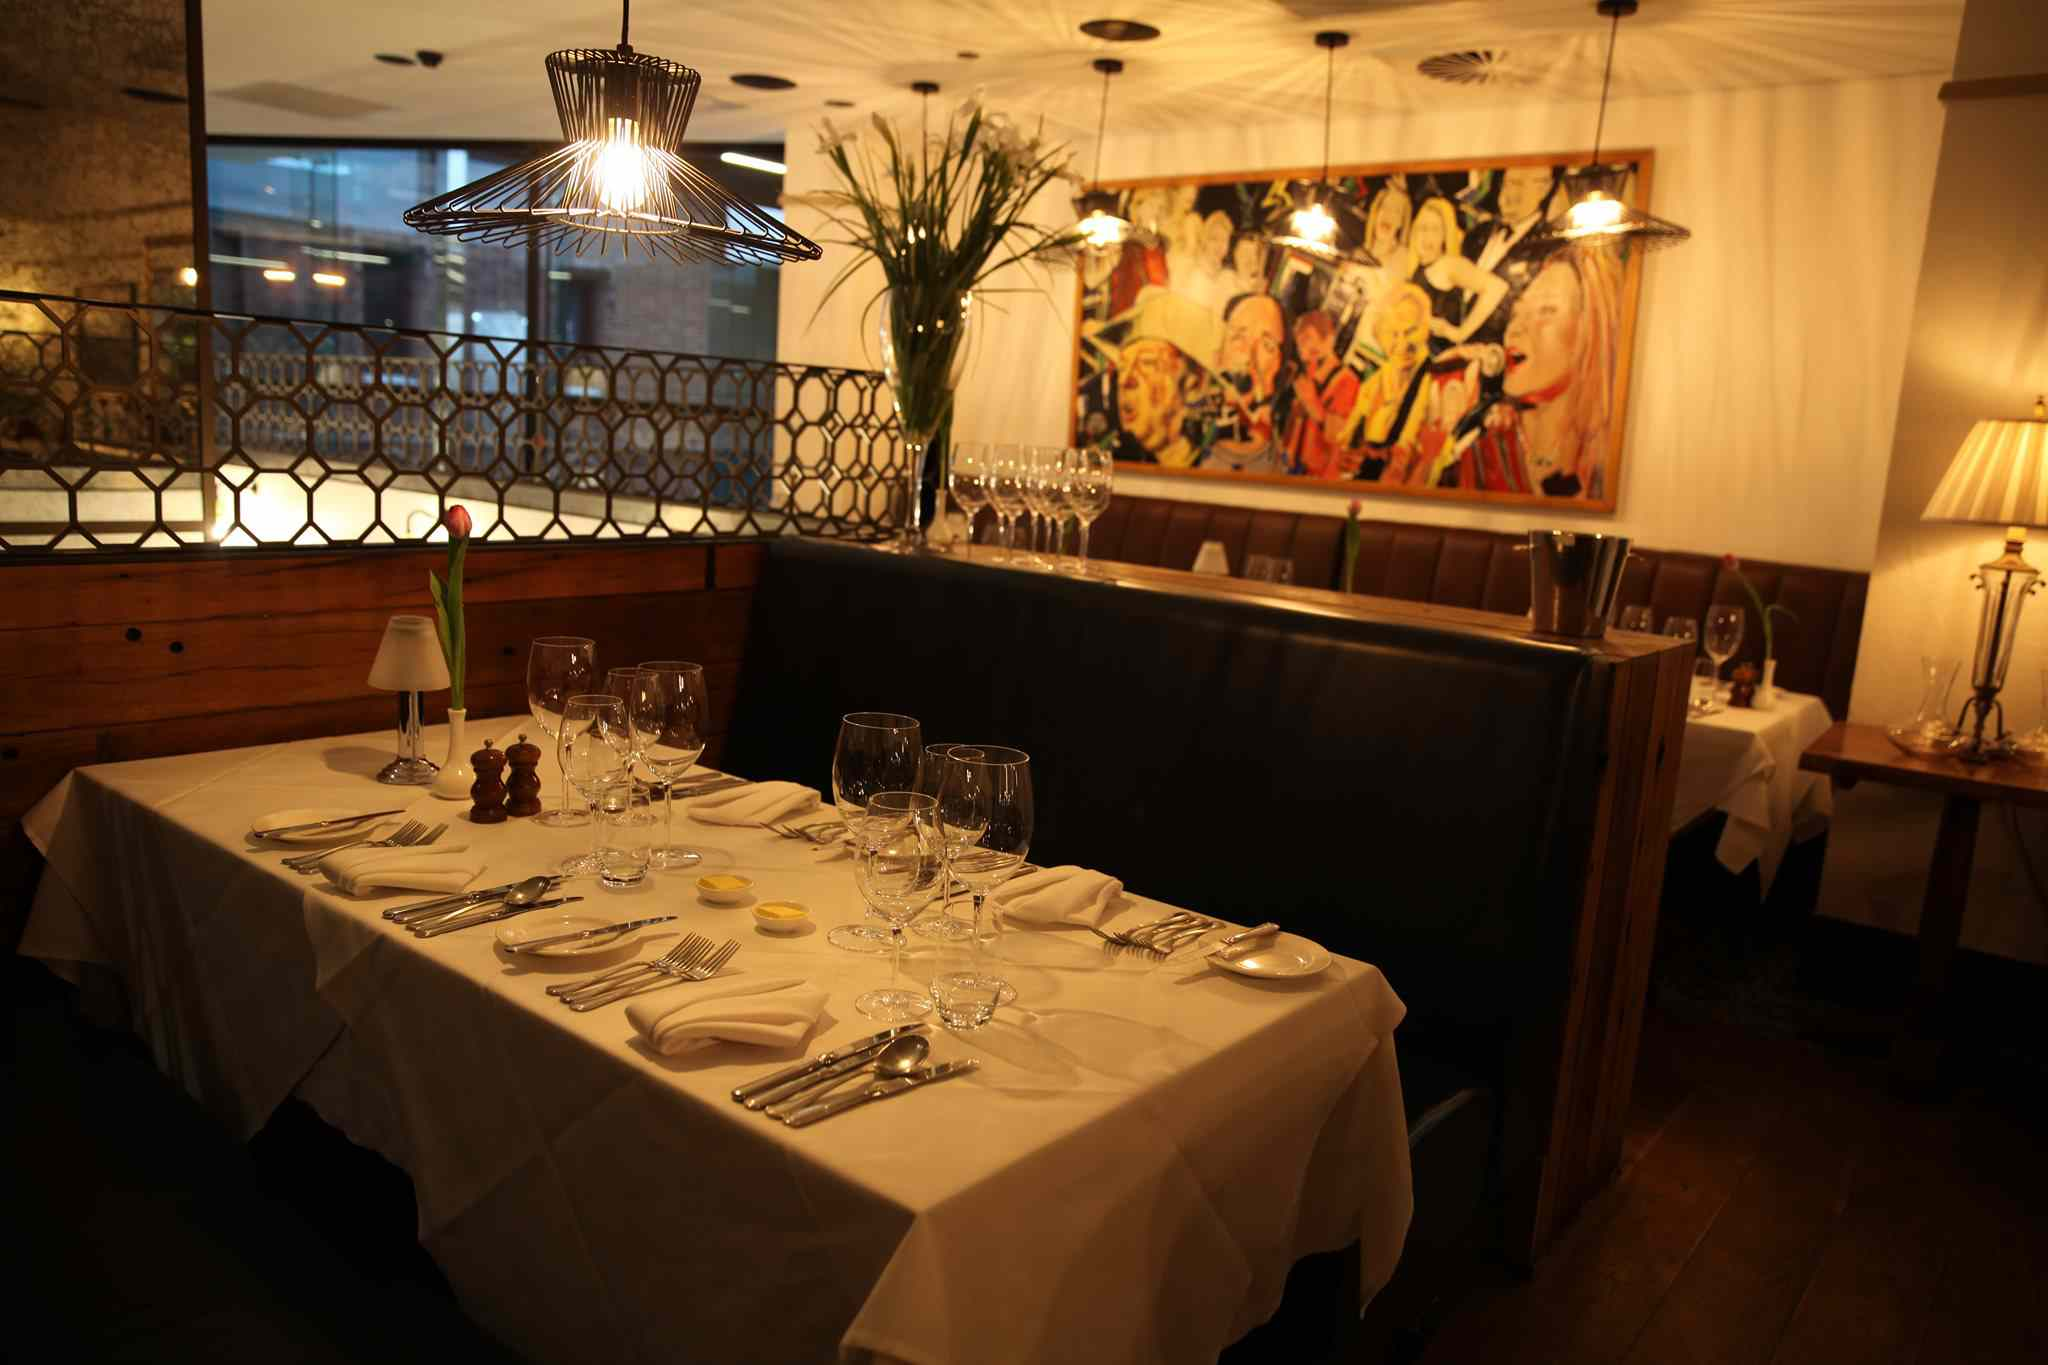 Dining room at Friends restaurant with white linen and artwork